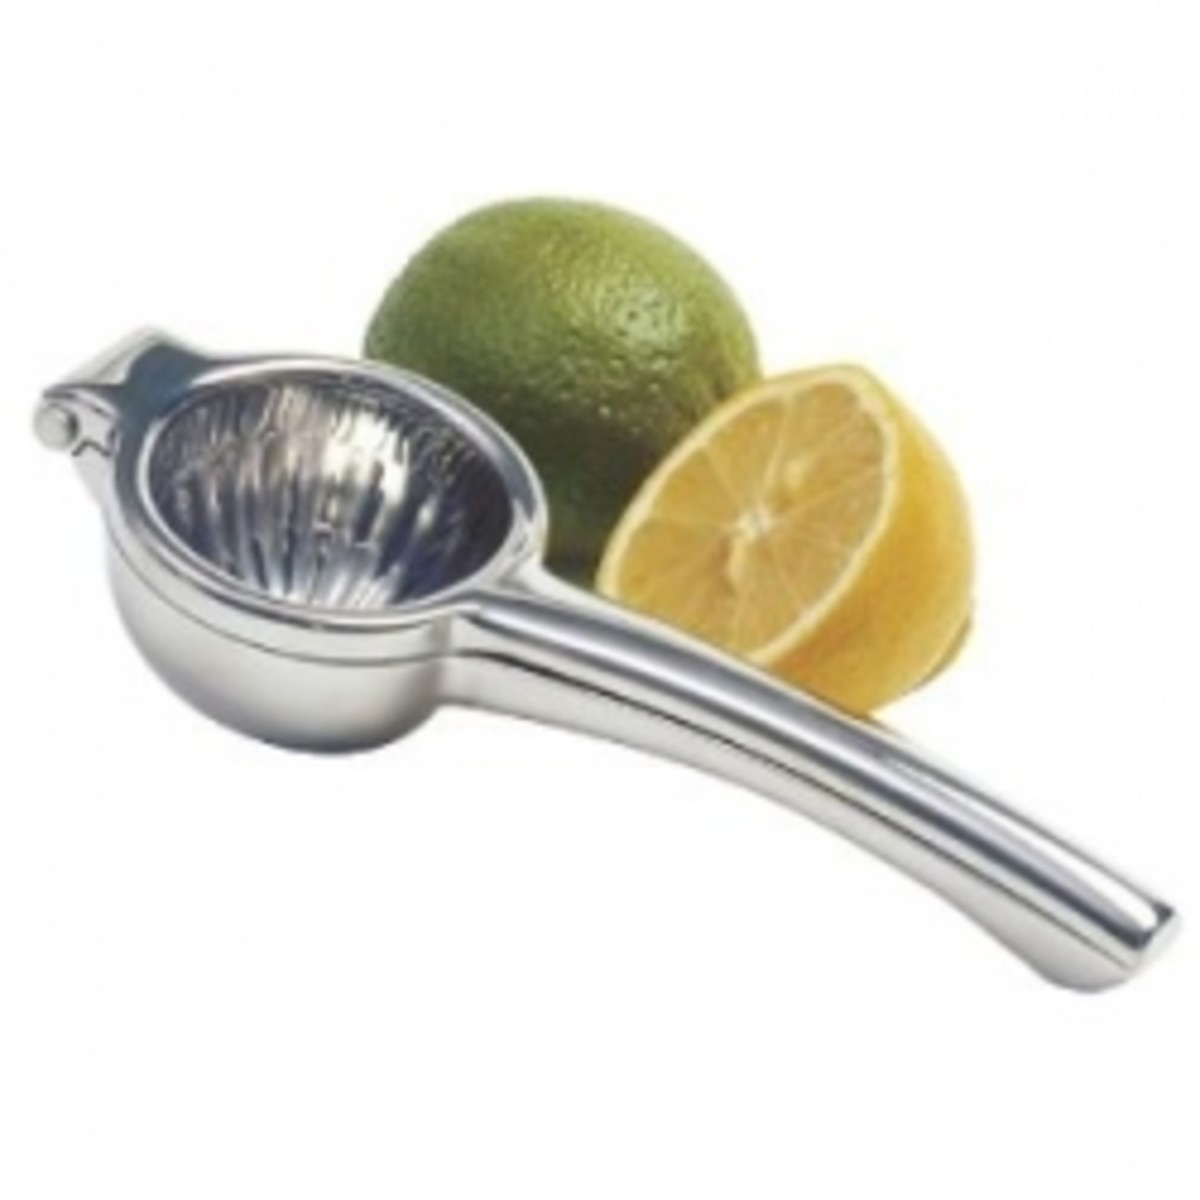 Norpro Stainless Steel Citrus Juice Press